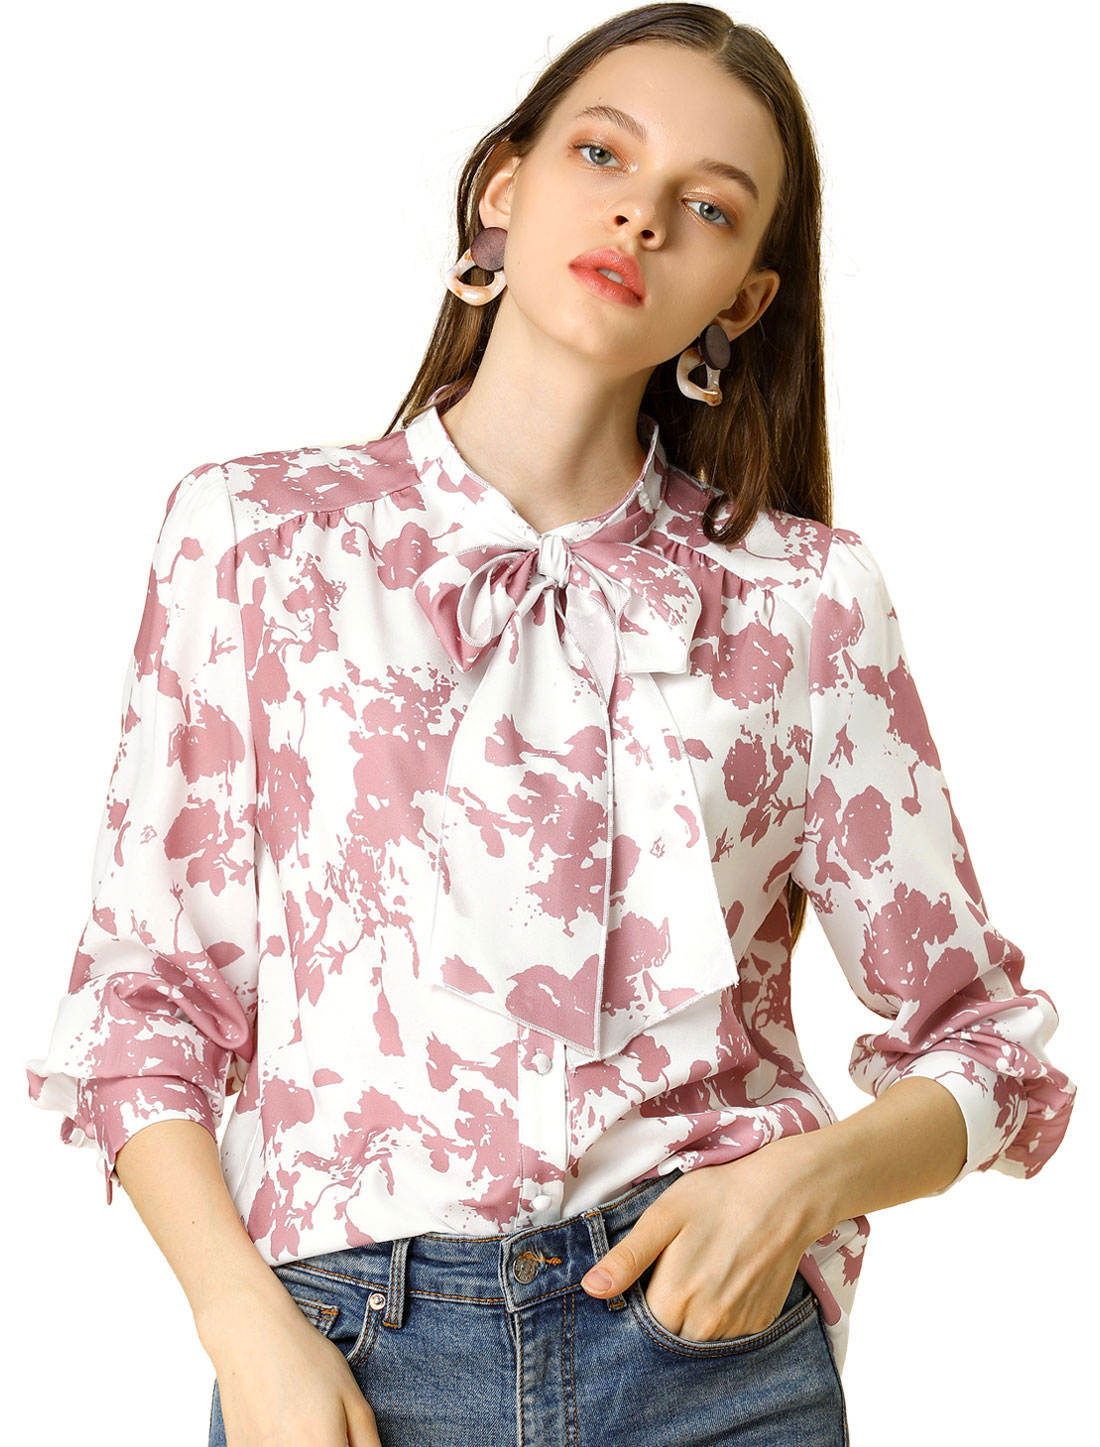 Allegra K Women's Floral Ruffle Sleeves Button Up Blouse Tie Neck Shirt White L